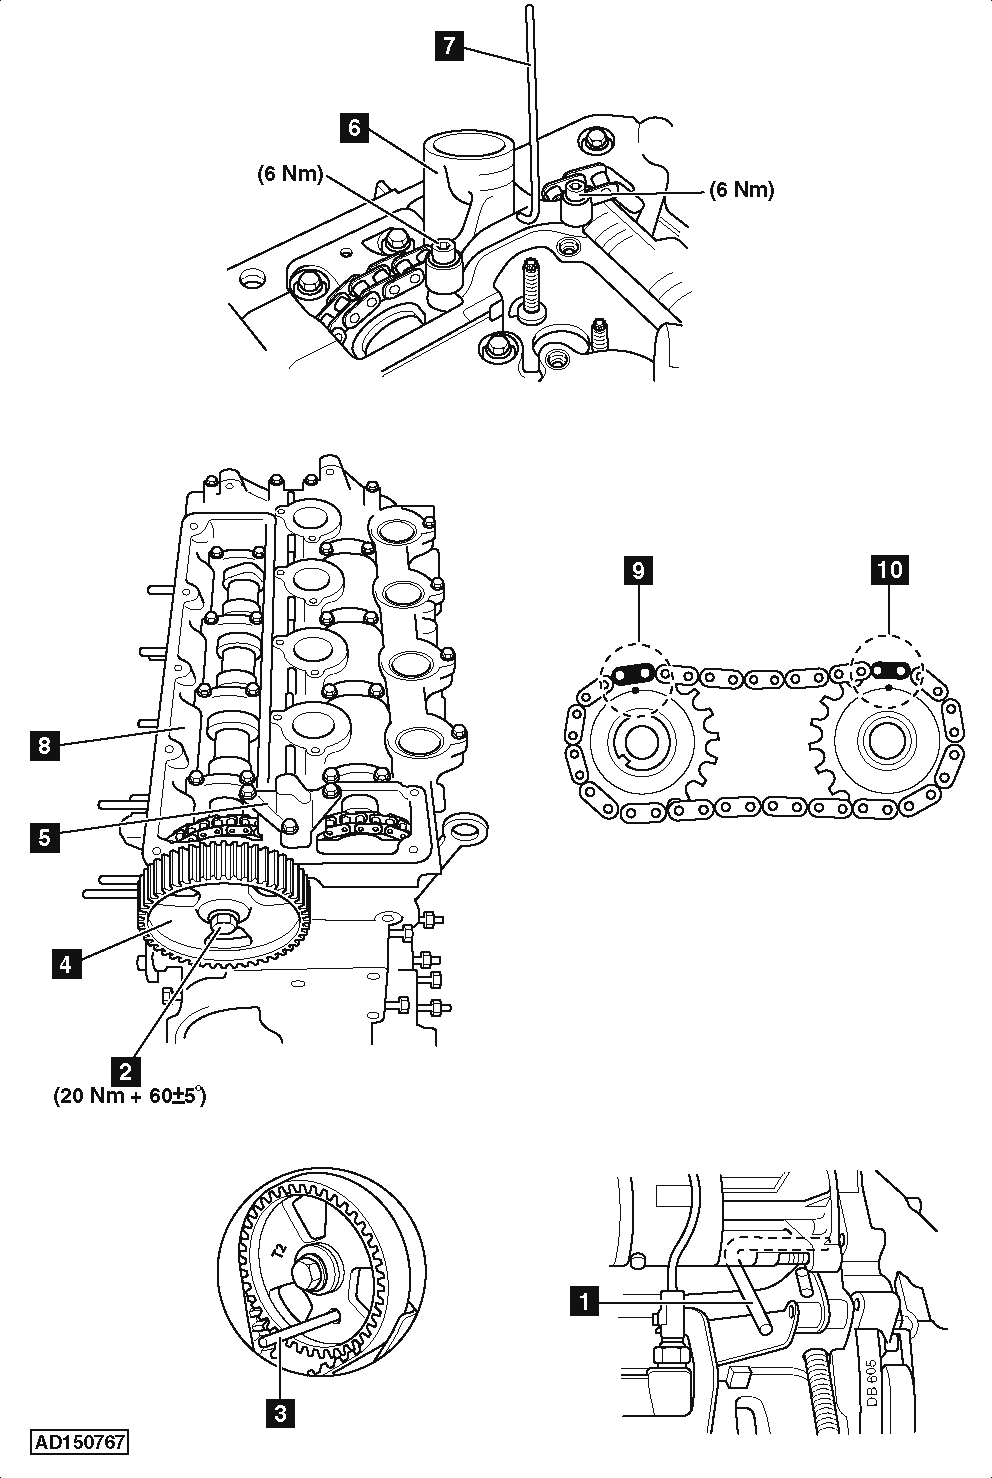 peugeot engine timing marks diagram for a engine air